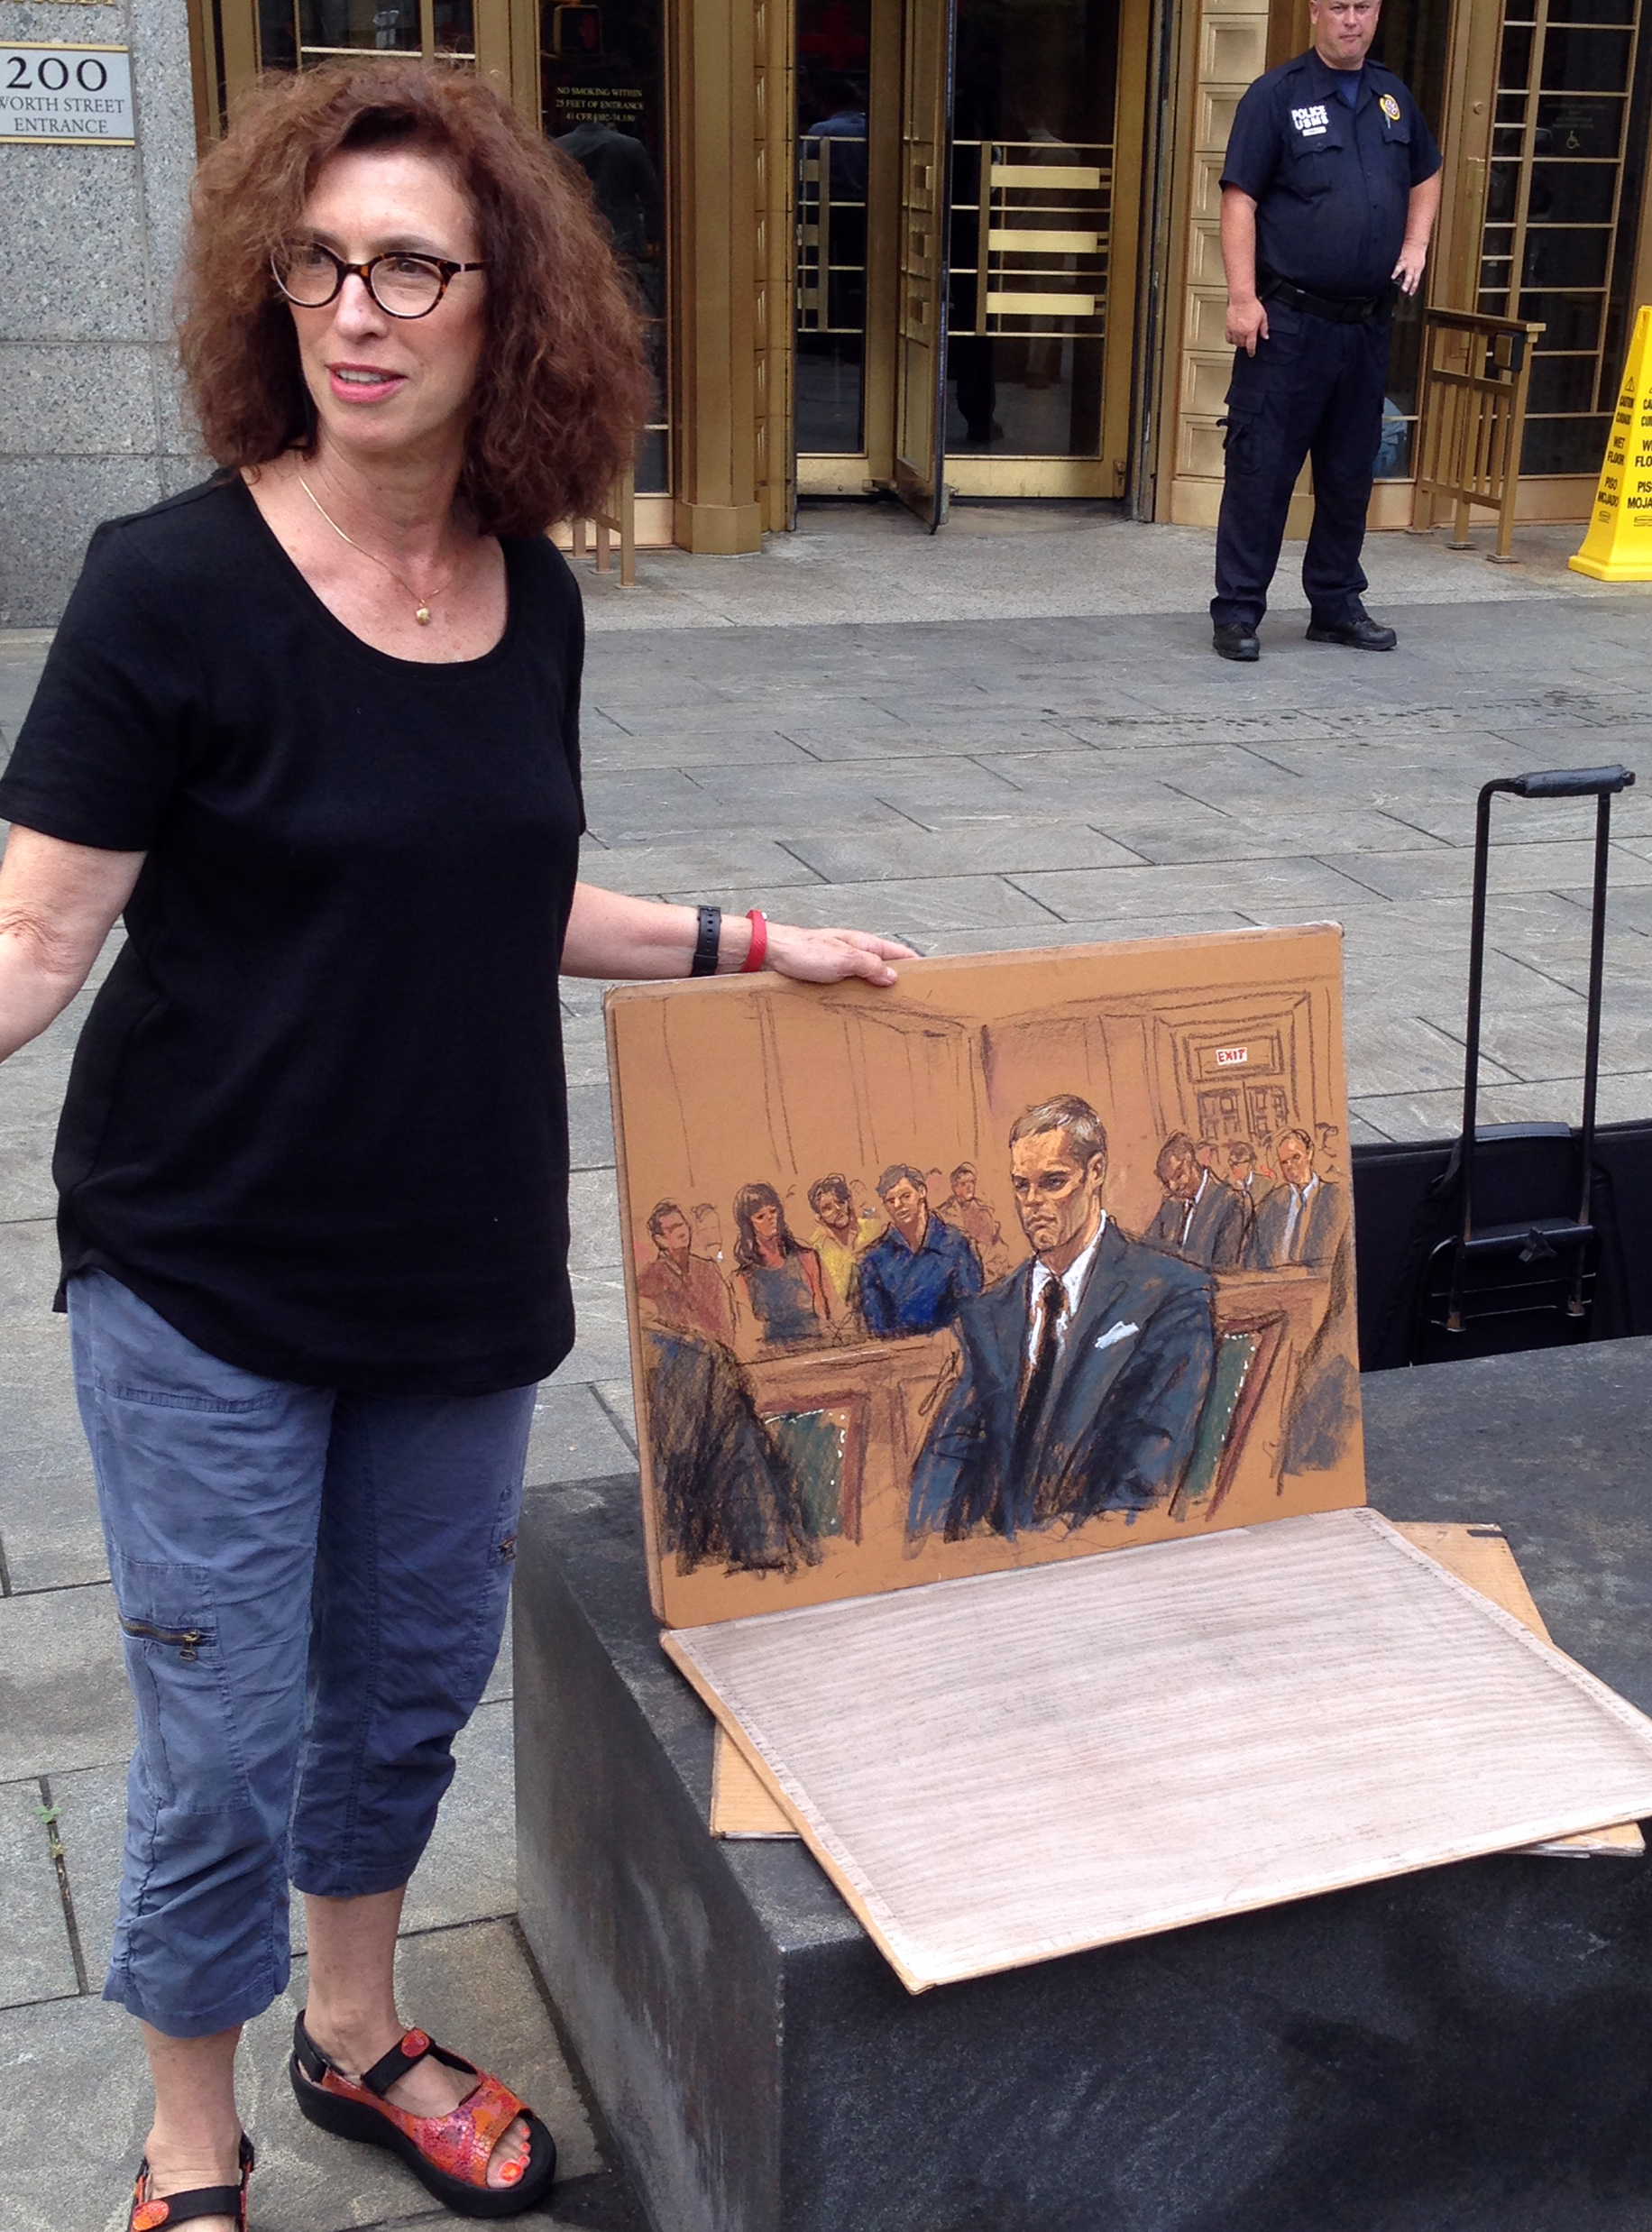 Courtroom sketch artist Jane Rosenberg displays her latest drawing of New England Patriots quarterback Tom Brady outside a federal courthouse in New York, Monday, Aug. 31, 2015. Rosenberg returned to court several weeks after her drawing at Brady's first